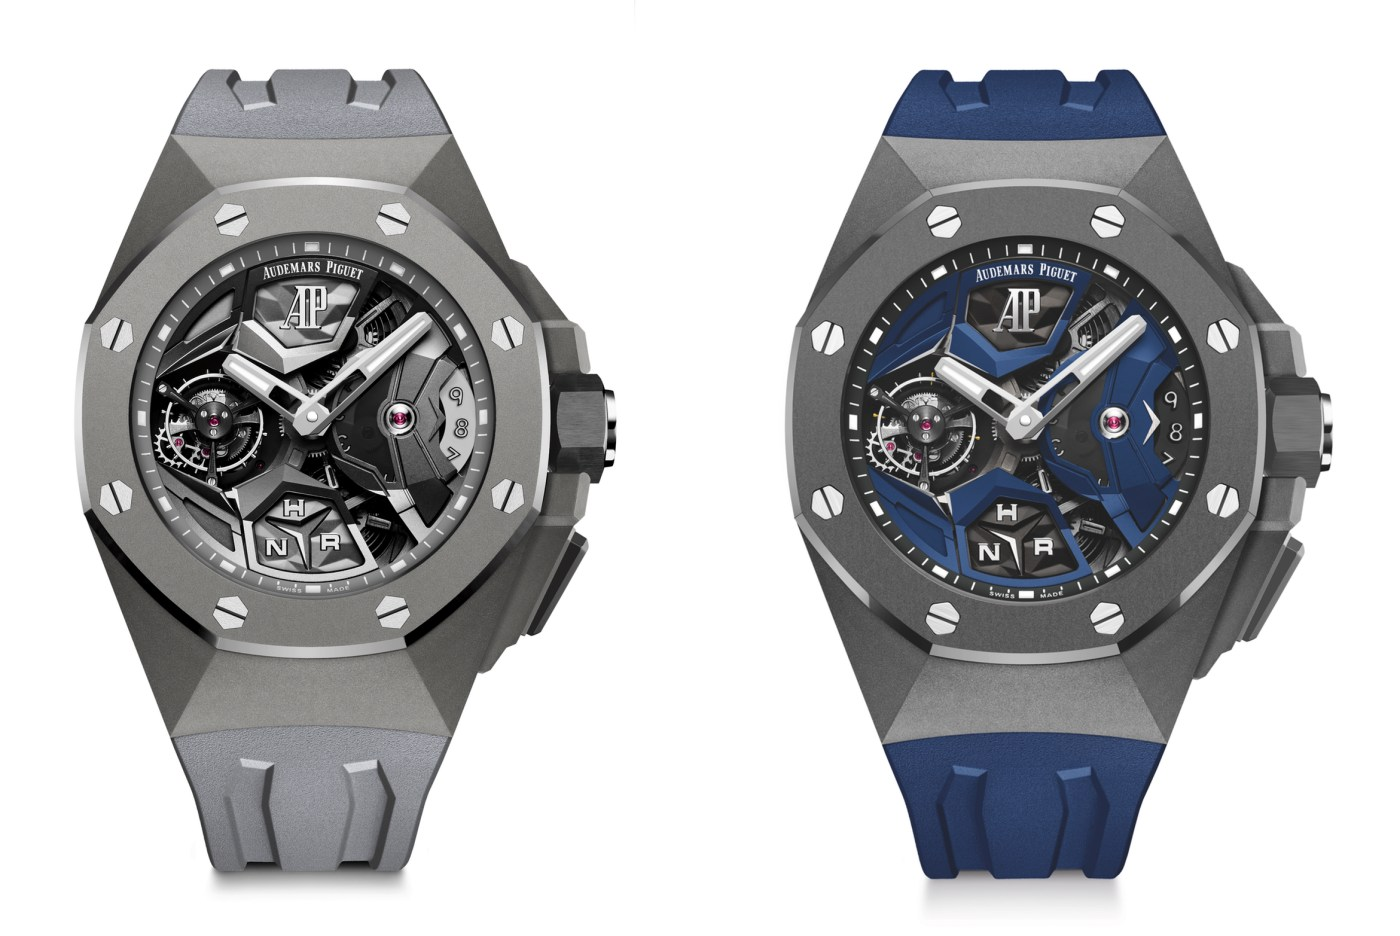 2020 Audemars Piguet Royal Oak Concept Flying Tourbillon GMT blue vs gray